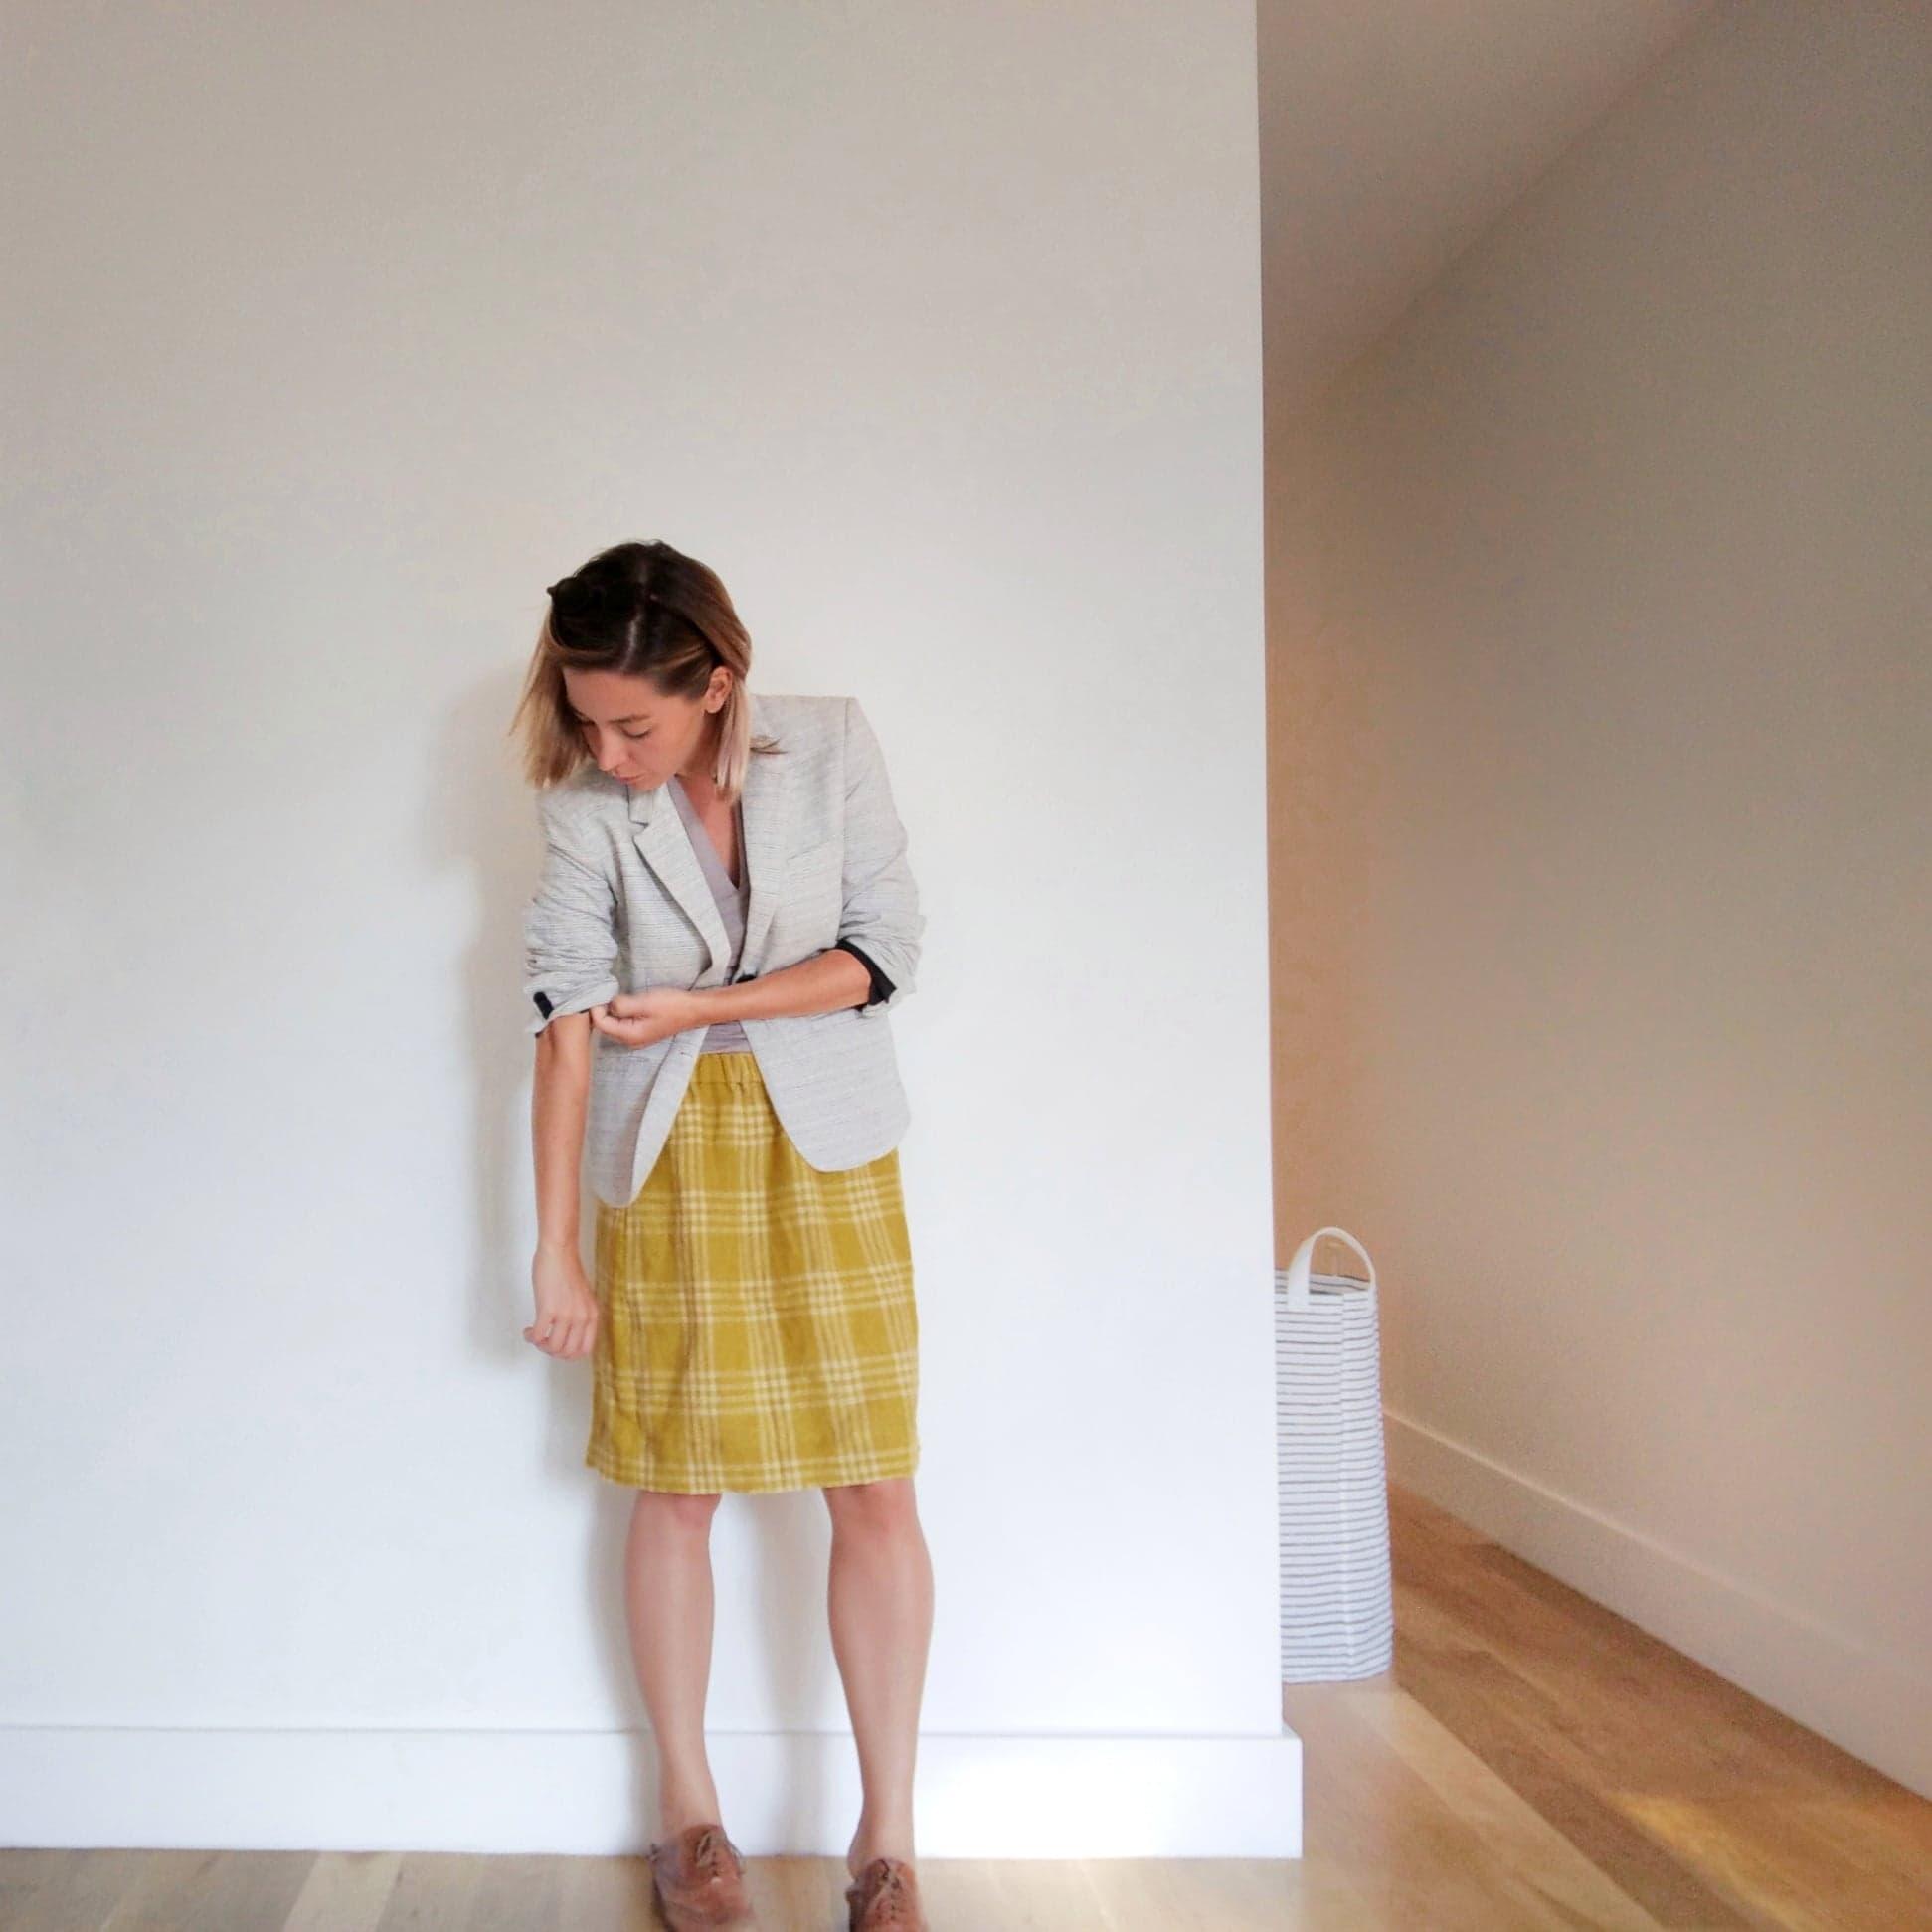 leanne wearing a gray blazer, lavender top, and mustard yellow linen plaid skirt with tan leather shoes